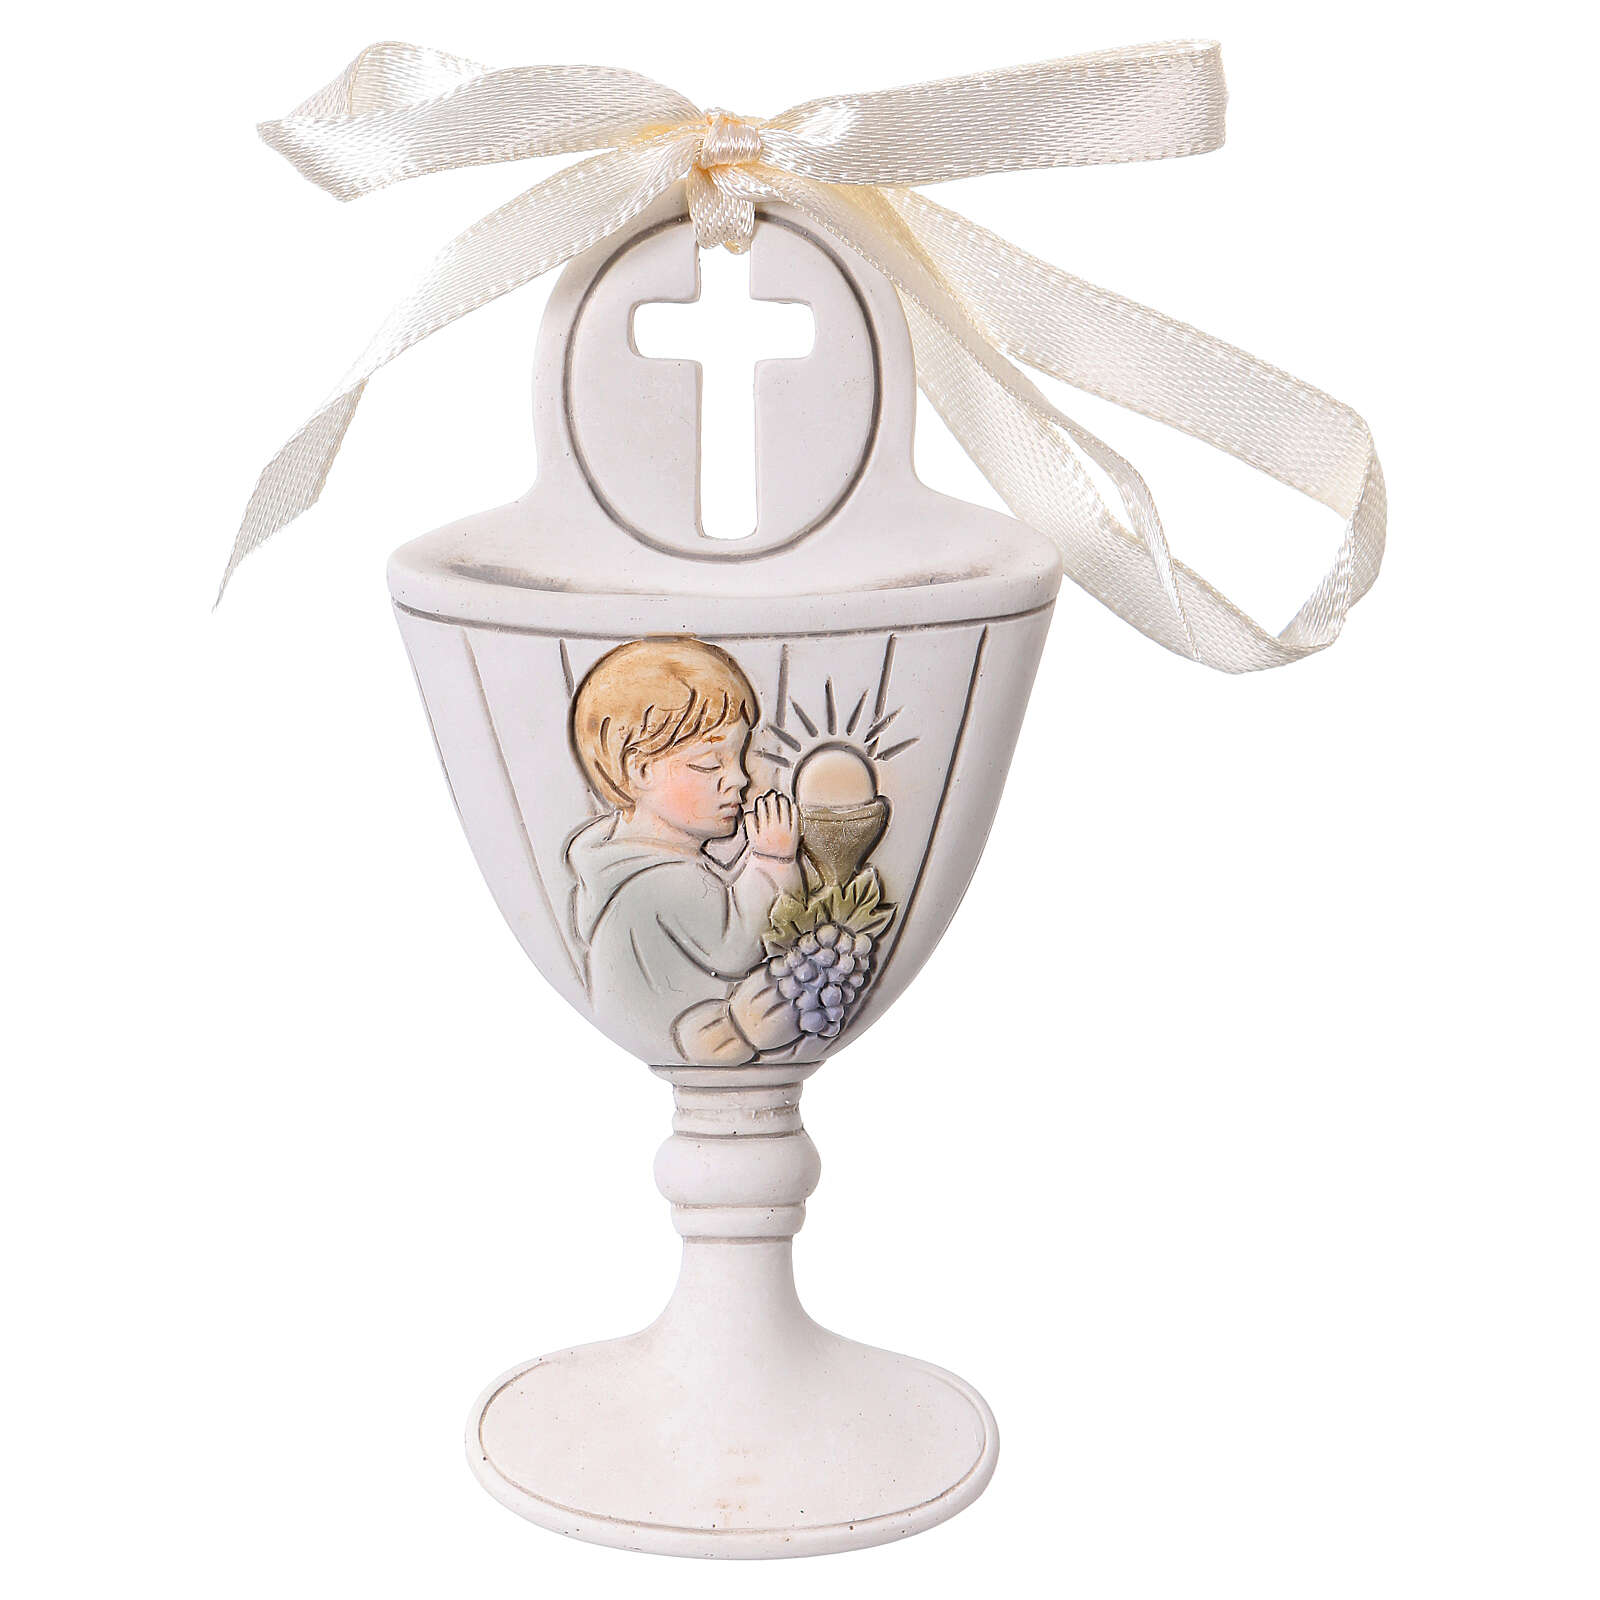 Chalice wall ornament with boy 3.5 in resin 3